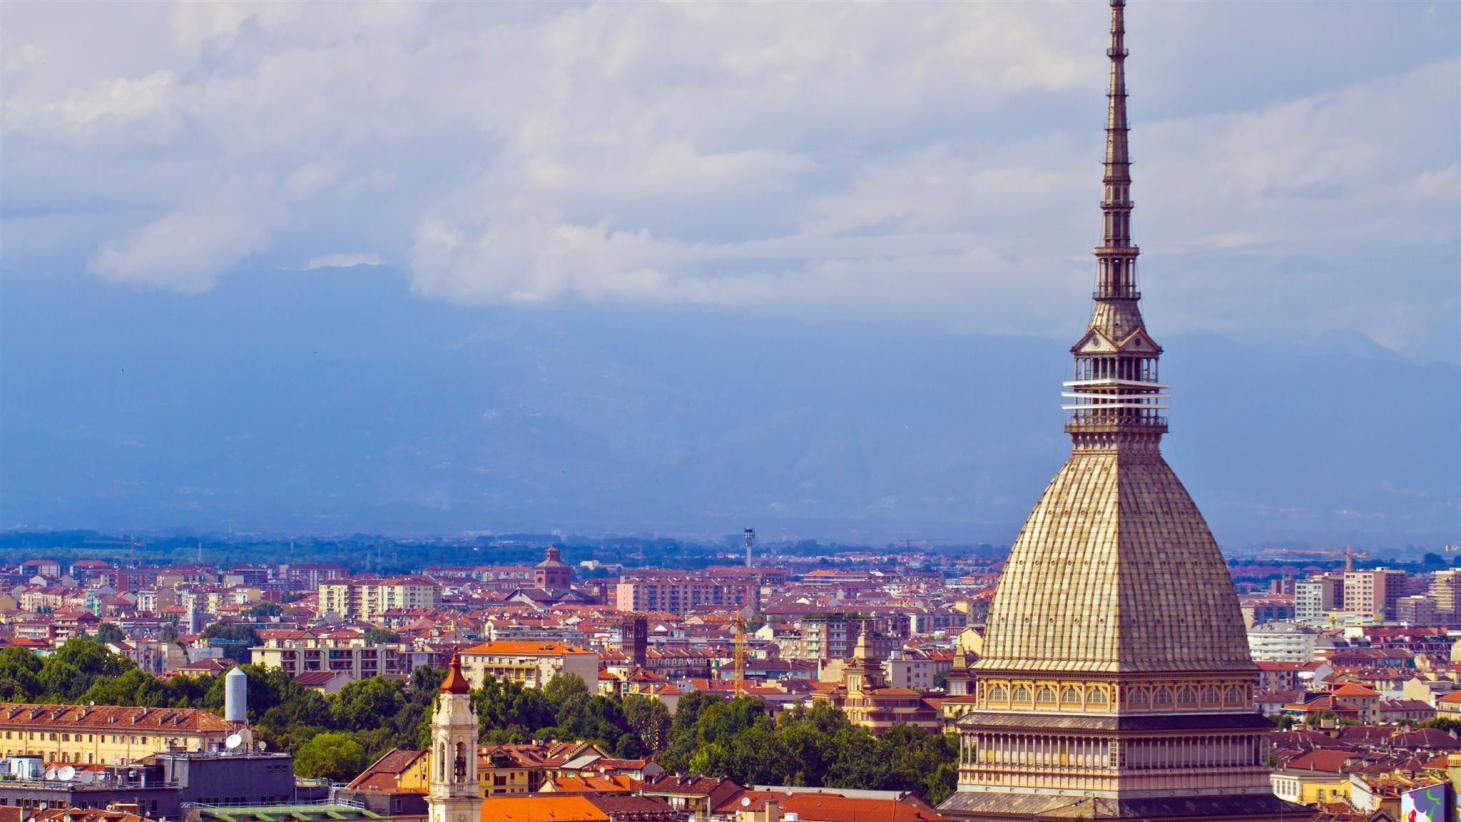 10 Best Turin Hotels Hd Photos Reviews Of Hotels In Turin